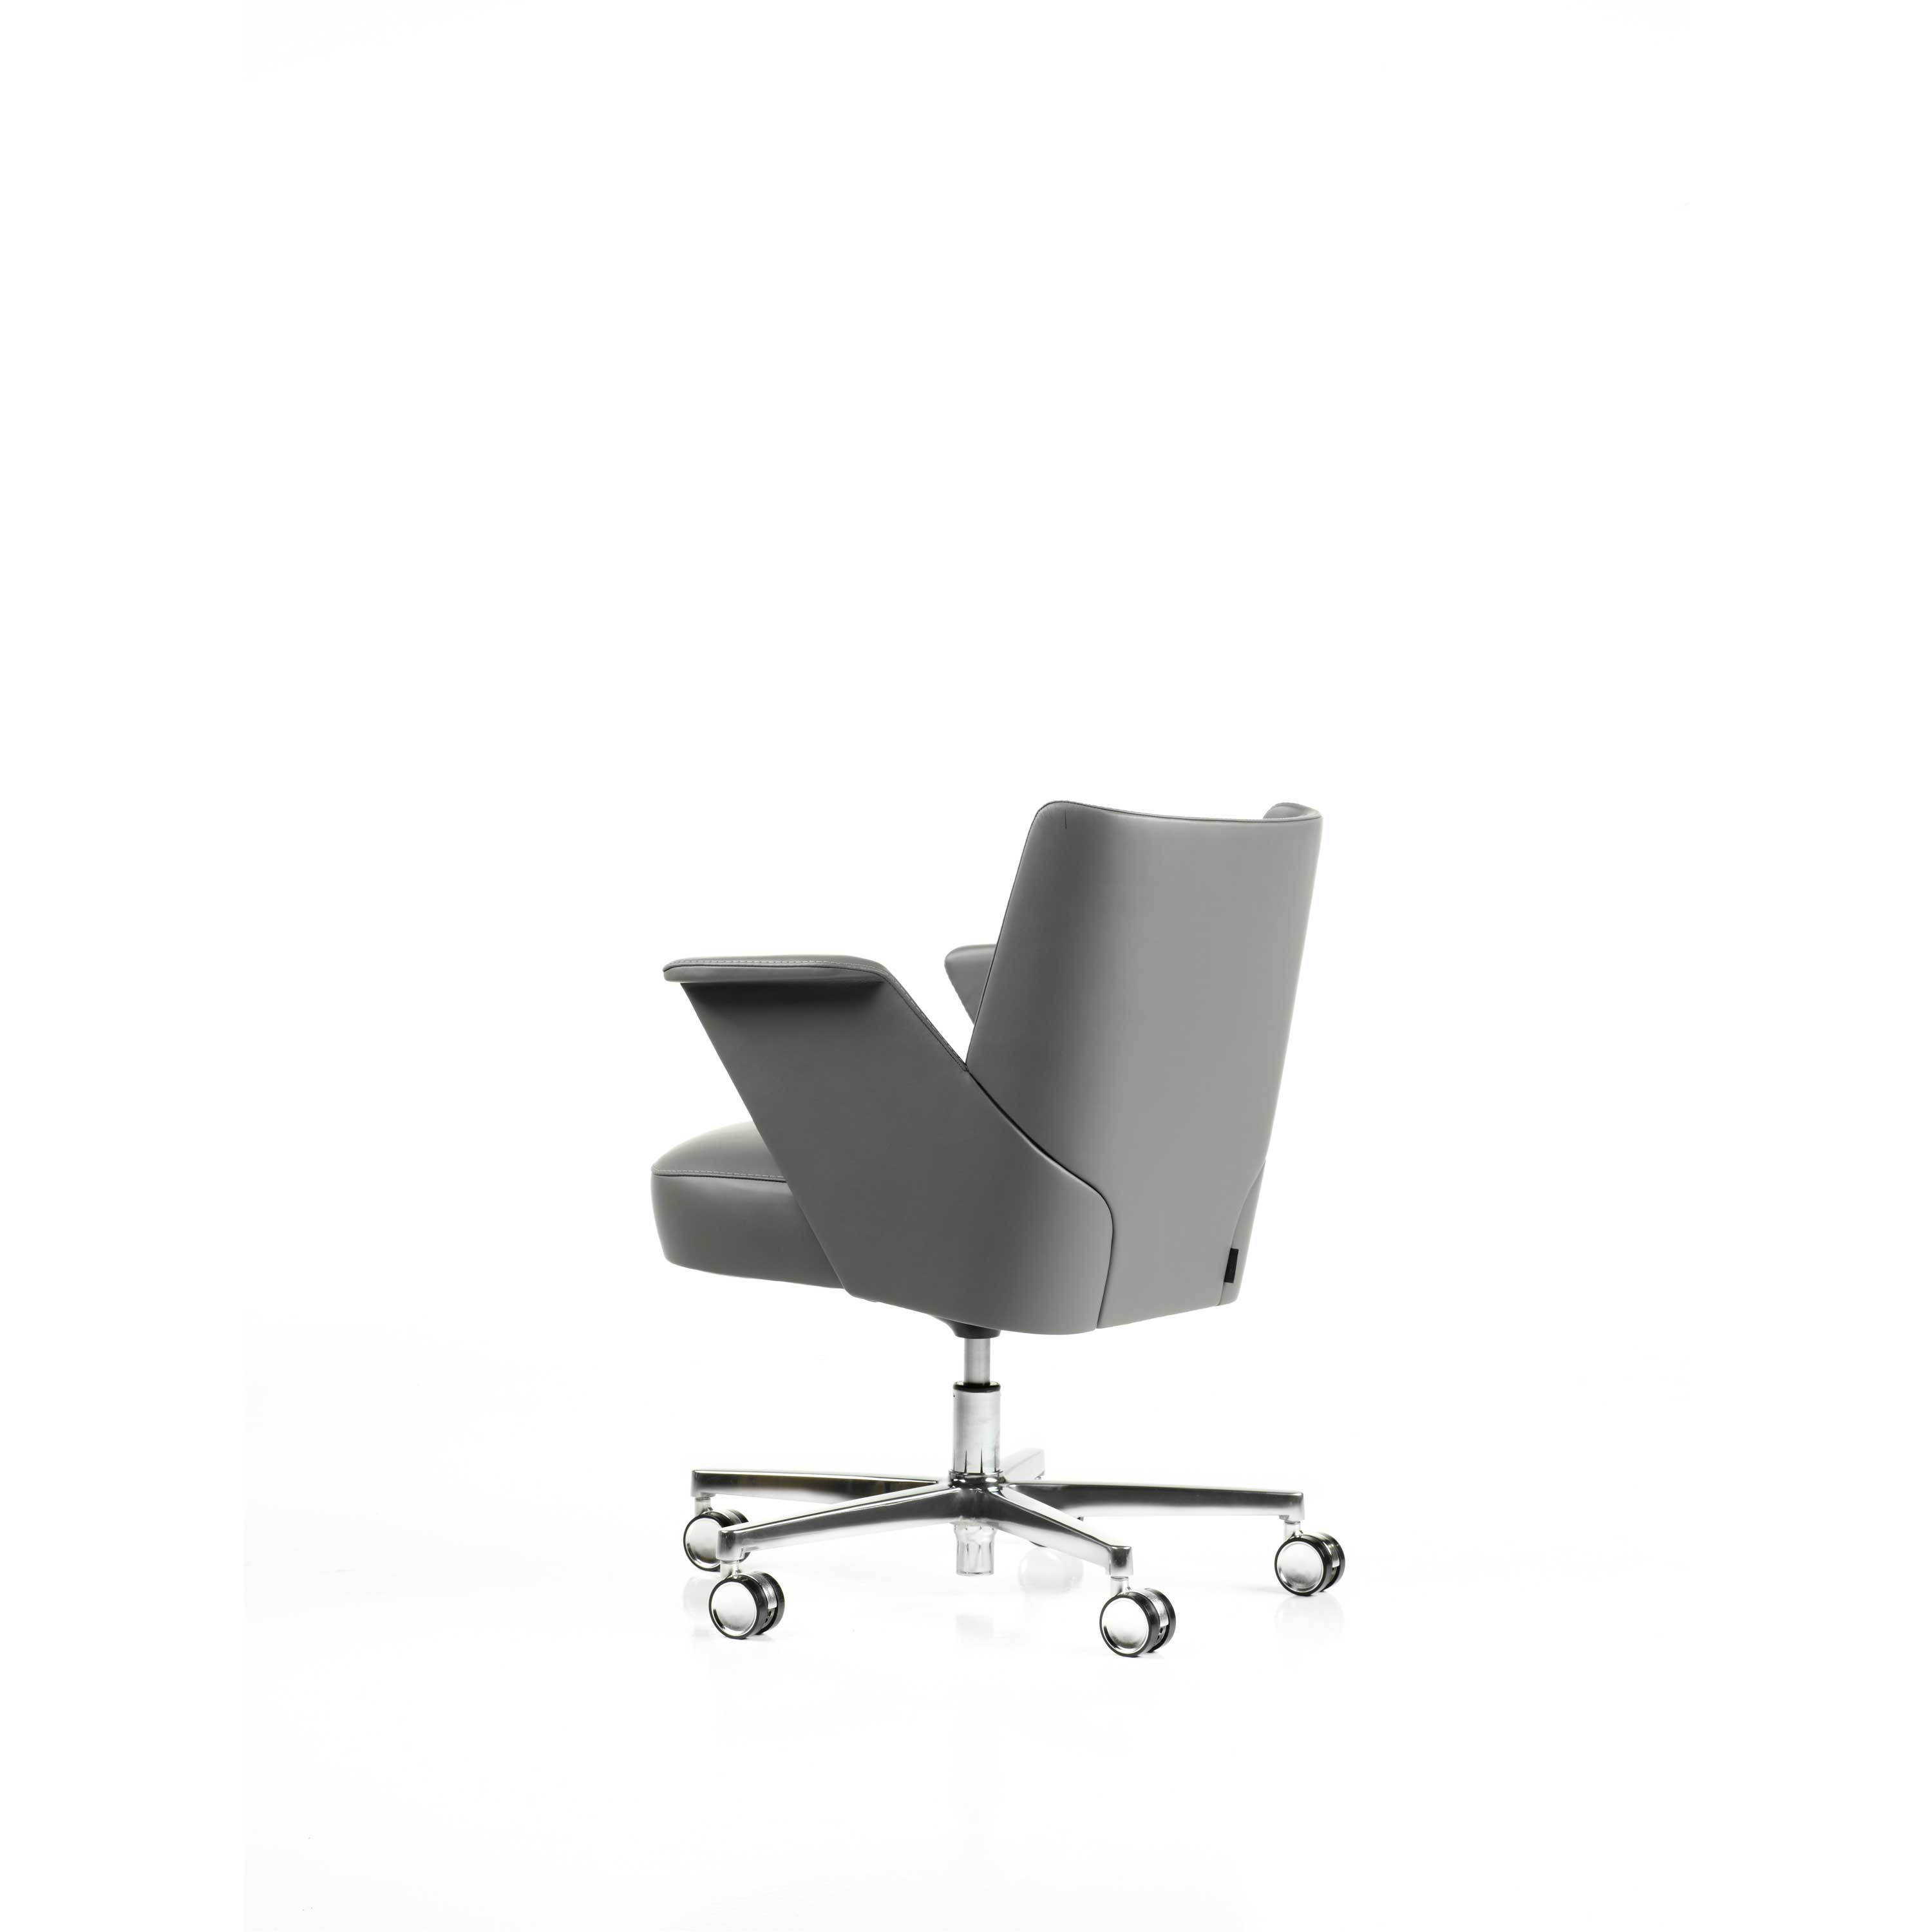 08S_Estel_Comfort&Relax_Office-Chair_Embrasse